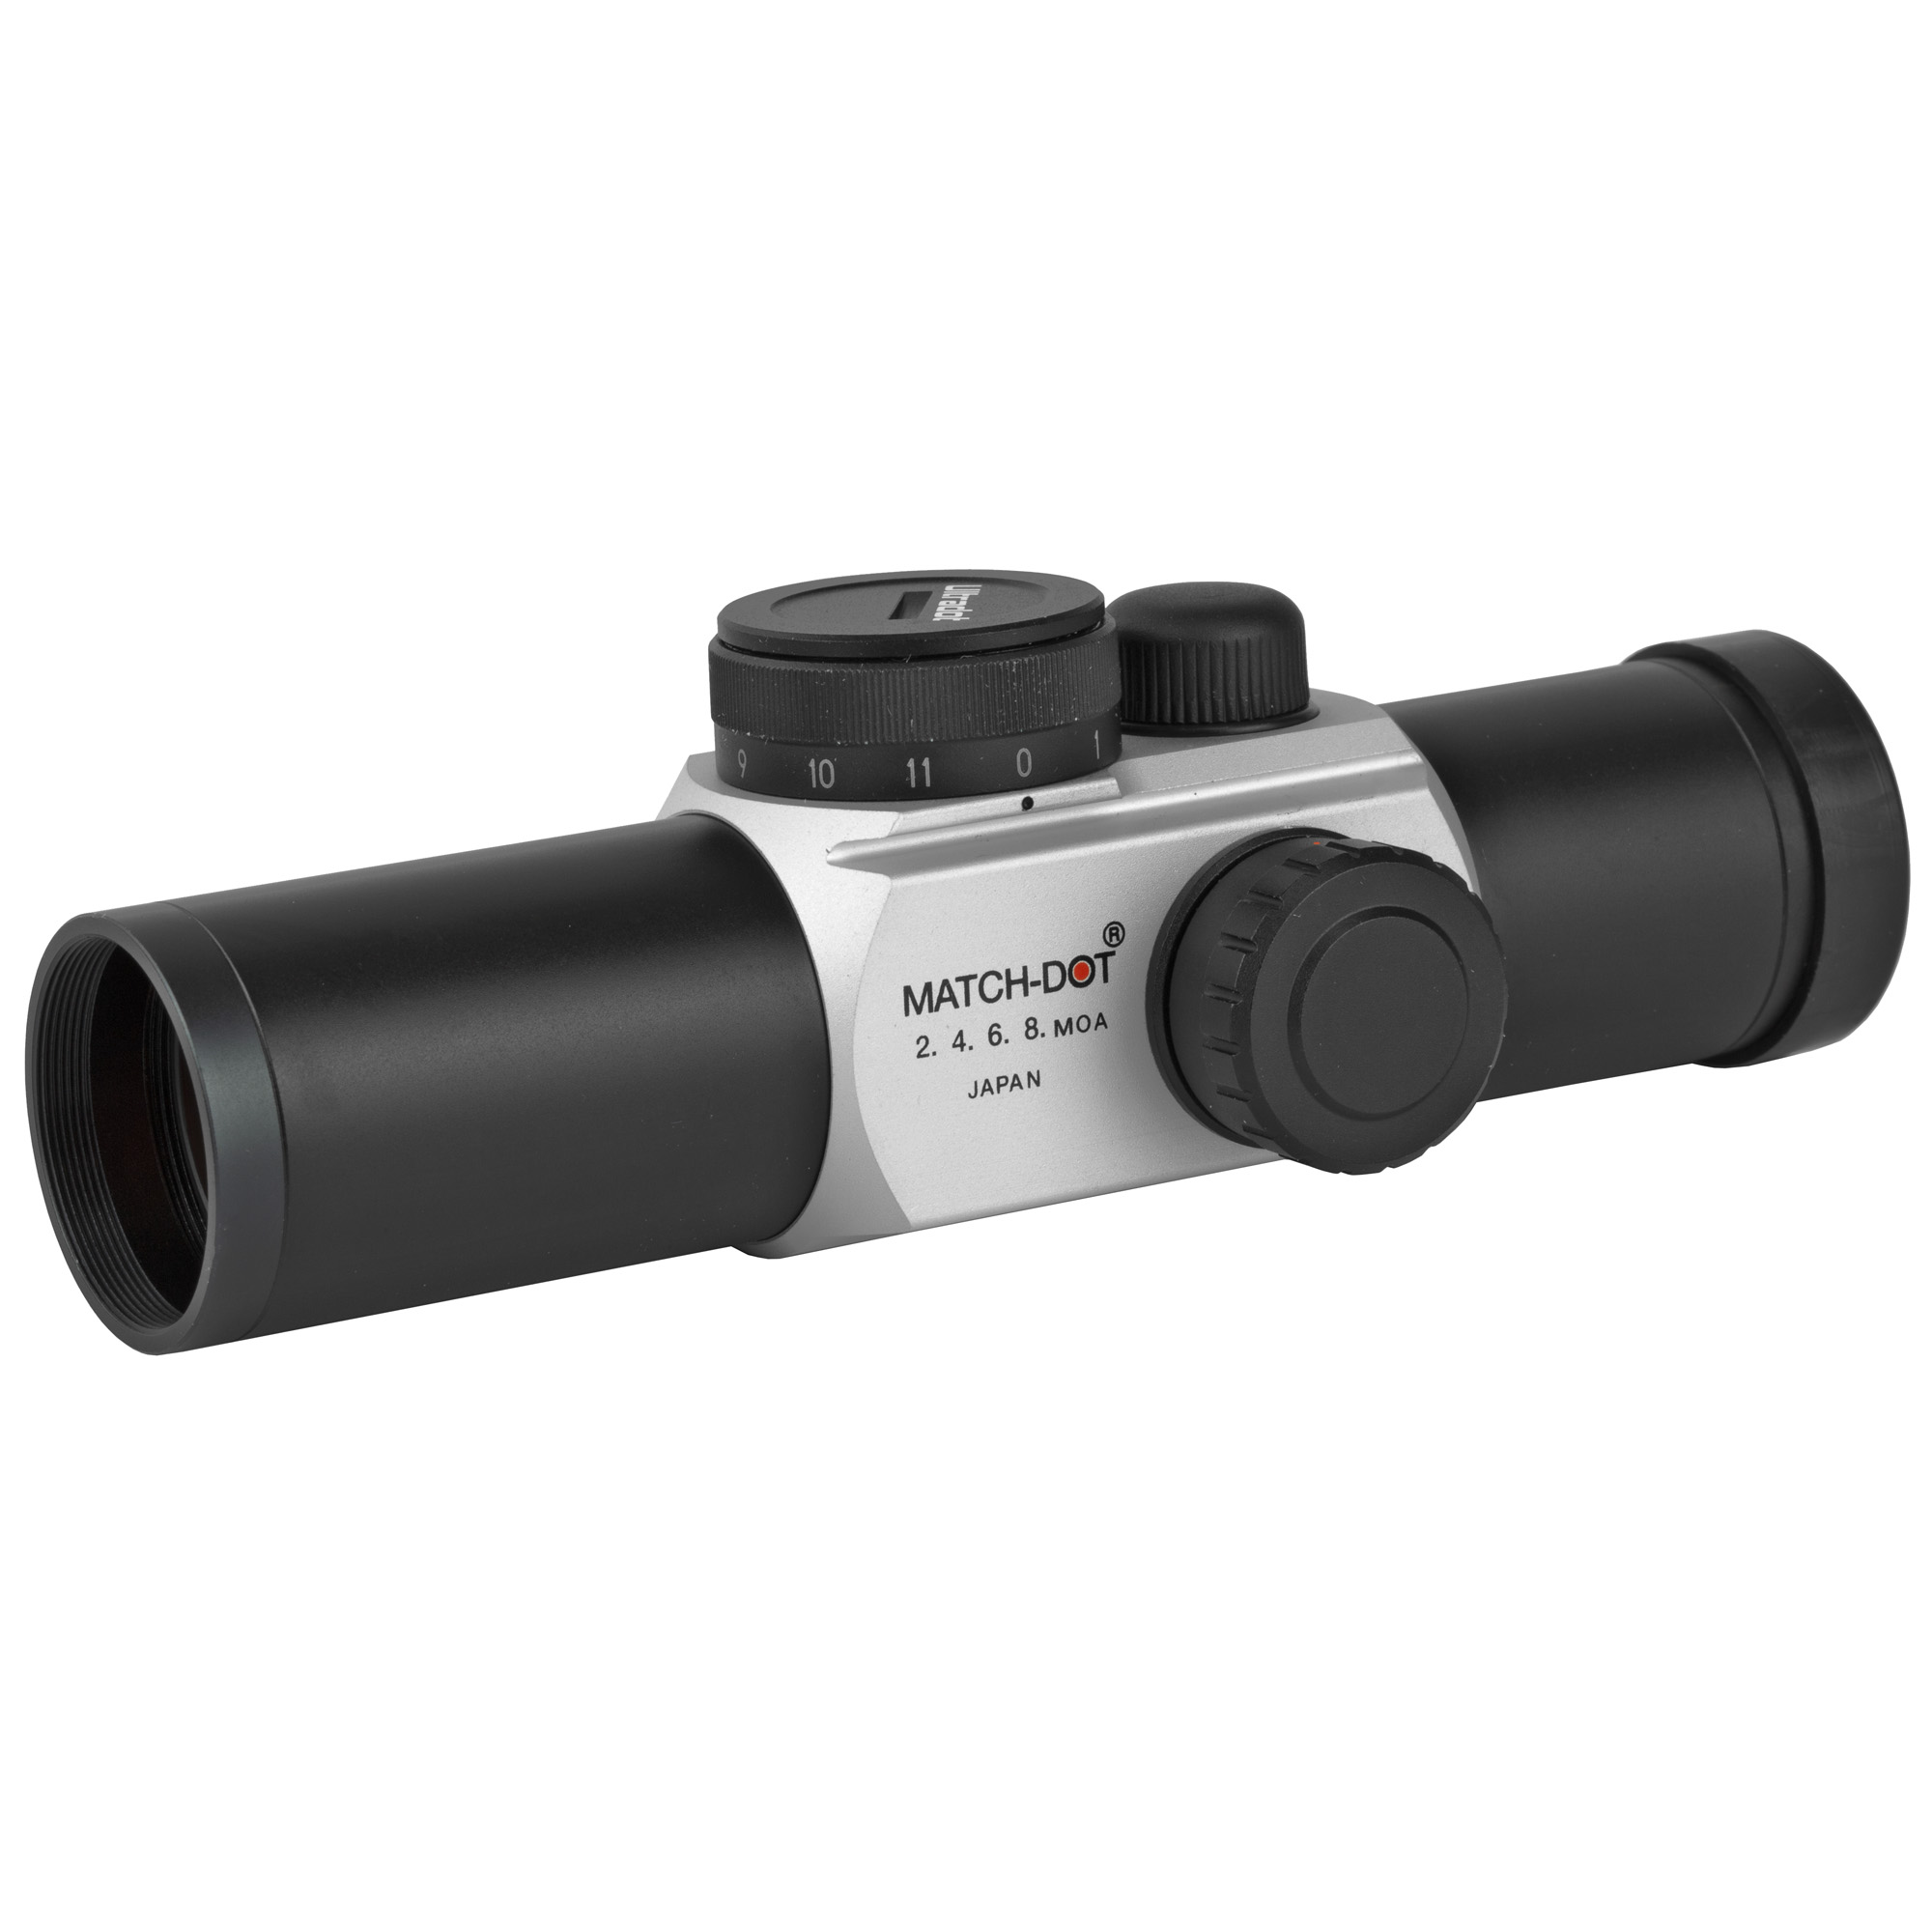 """The Original Matchdot is only 5.1 inches and weighs just 4.8 oz. Designed for competition shooters by Camp Perry Champions. Features four dot sizes - 2""""4""""6 and 8 MOA and a 30mm diameter tube. Click adjustable brightness control."""